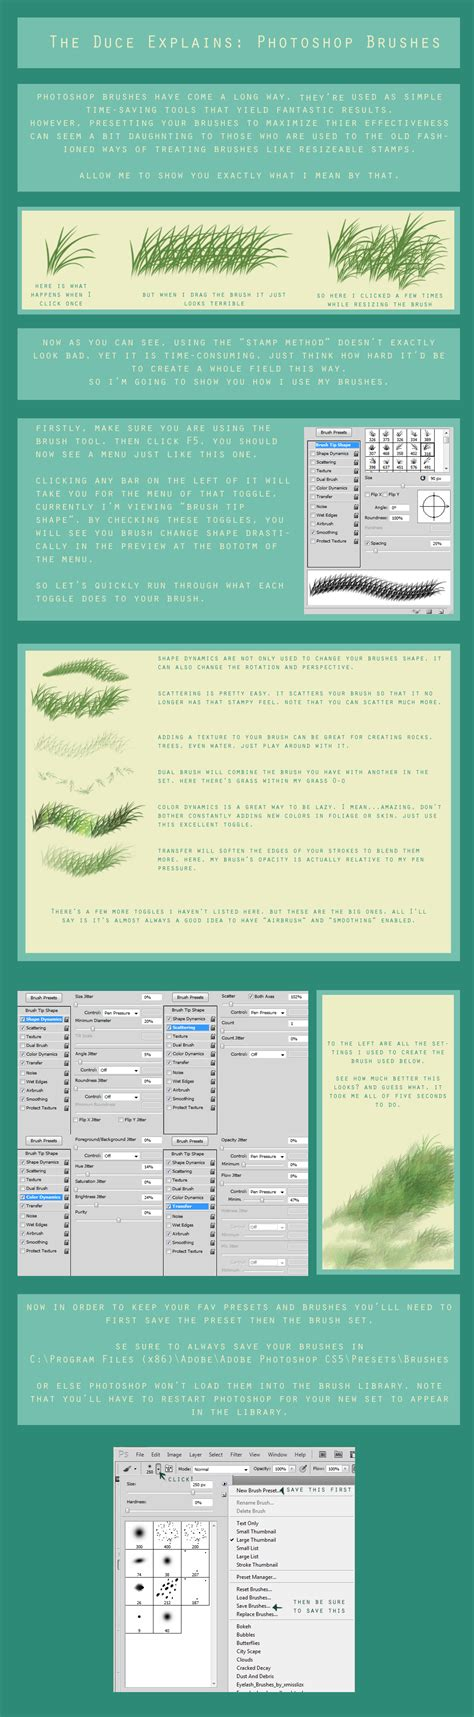 tutorial how to load new brushes in adobe photoshop photoshop brushes tutorial by duces wild on deviantart